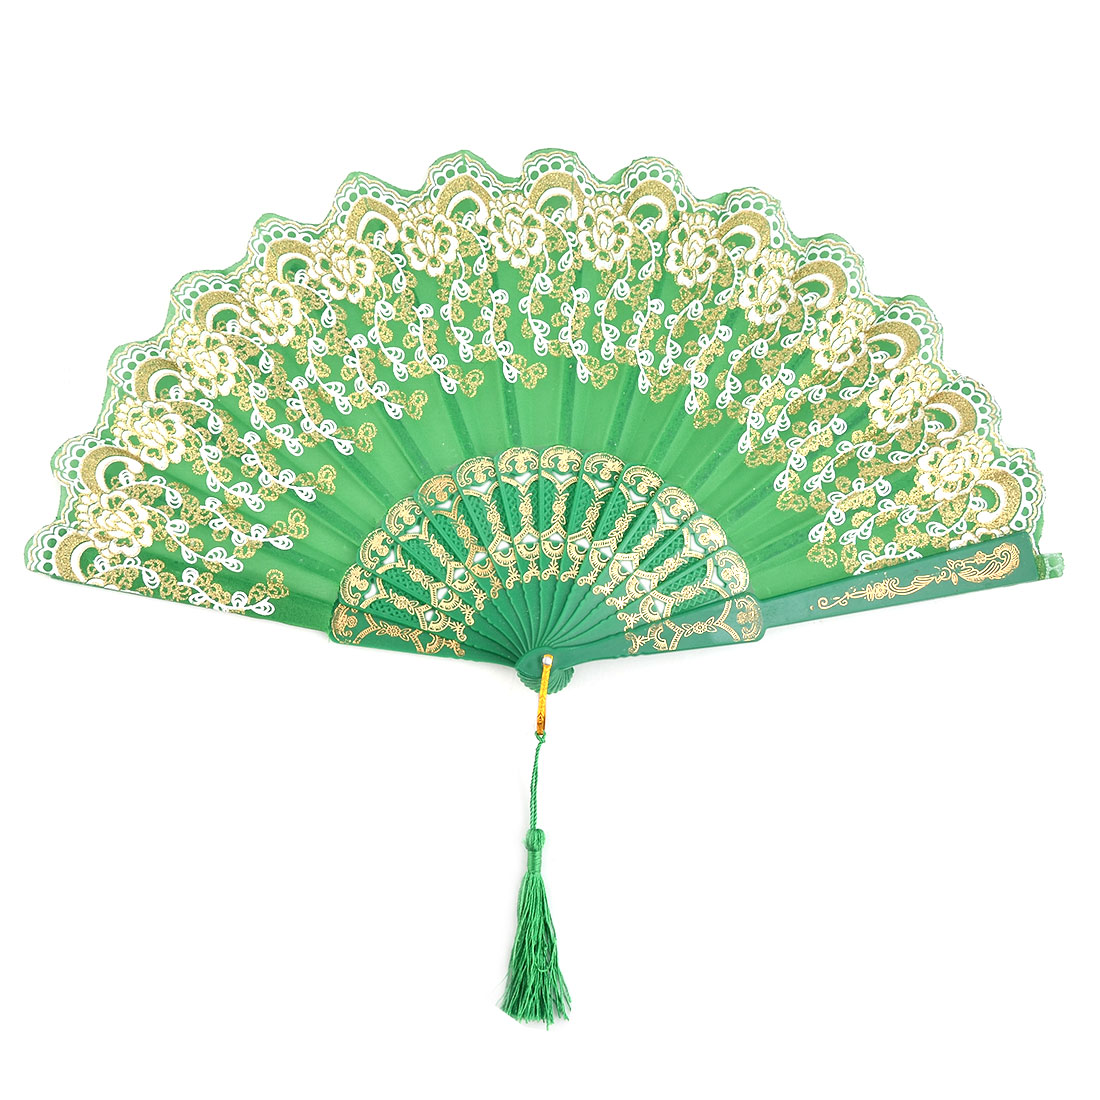 Household Wedding Plastic Frame Tassel Decor Folding Cooling Dancing Hand Fan Green